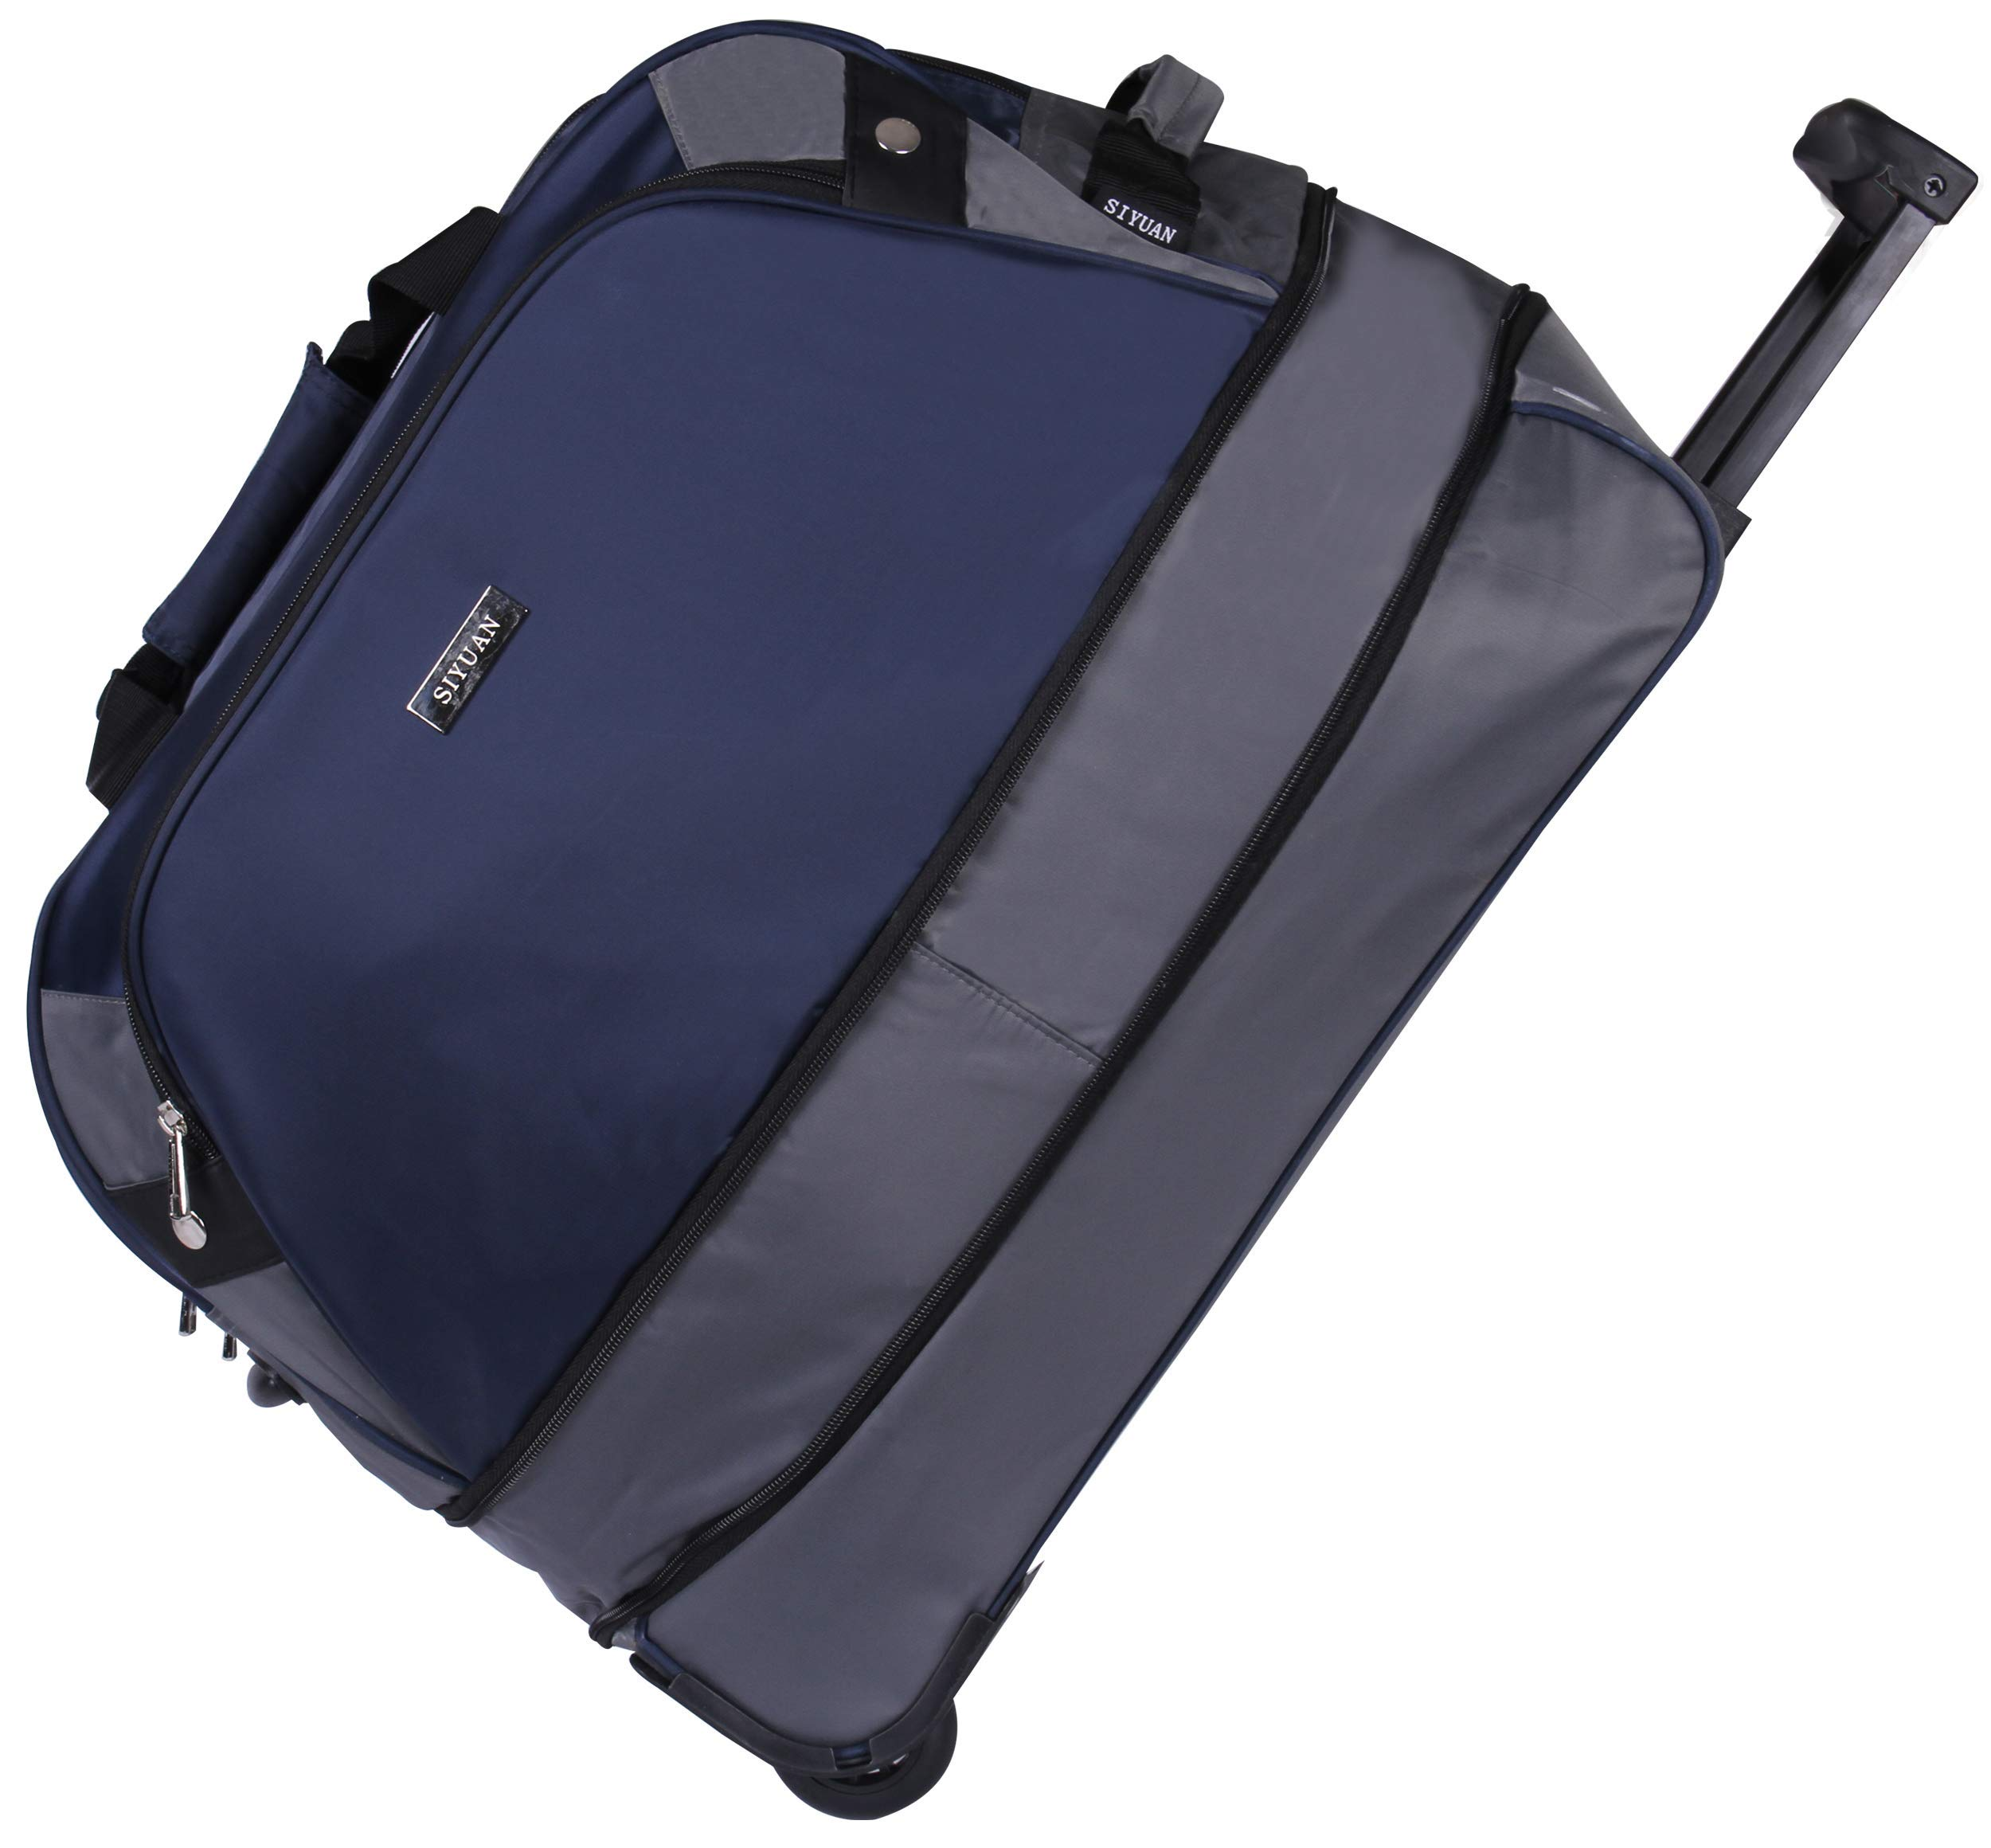 SIYUAN Duffel Bag with Wheels Travel Tote Suitcase Big Carry-on Rolling Suitcase Weekend Luggage Suitcase on Wheels Navy Large 24 Inches